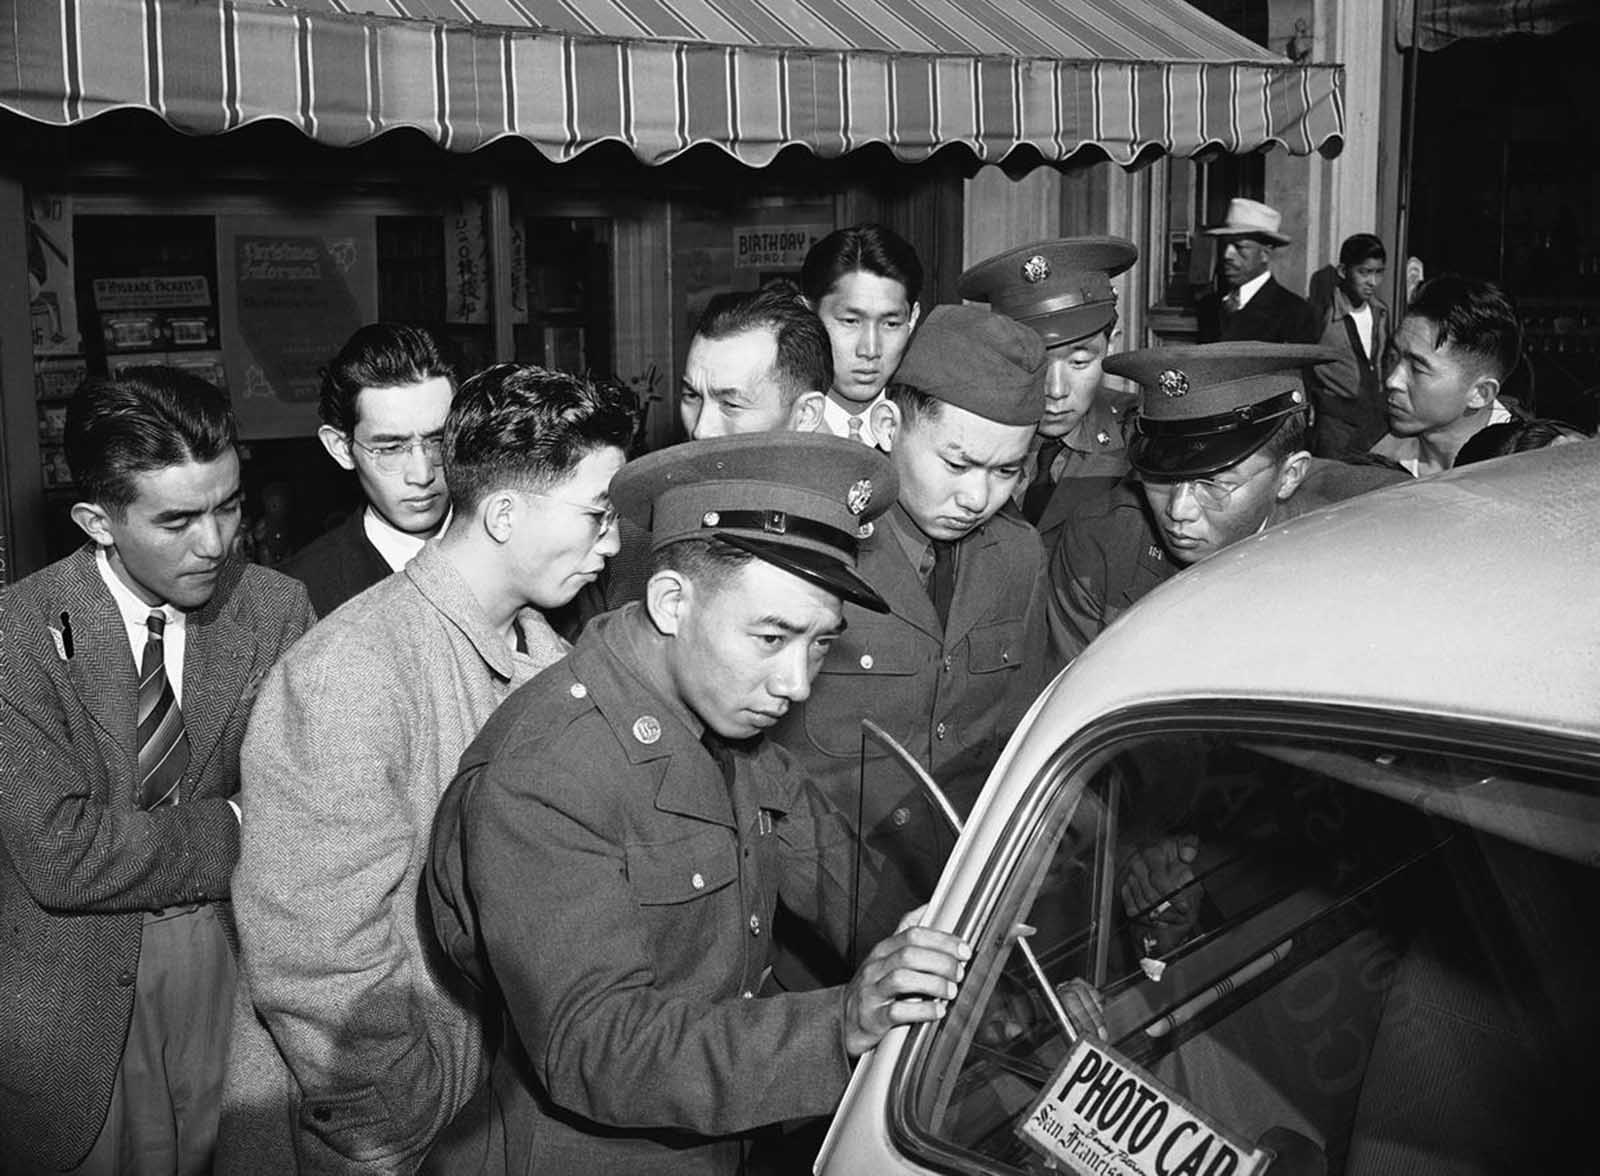 Young Japanese Americans, including several Army selectees, gather around a reporter's car in the Japanese section of San Francisco, on December 8, 1941